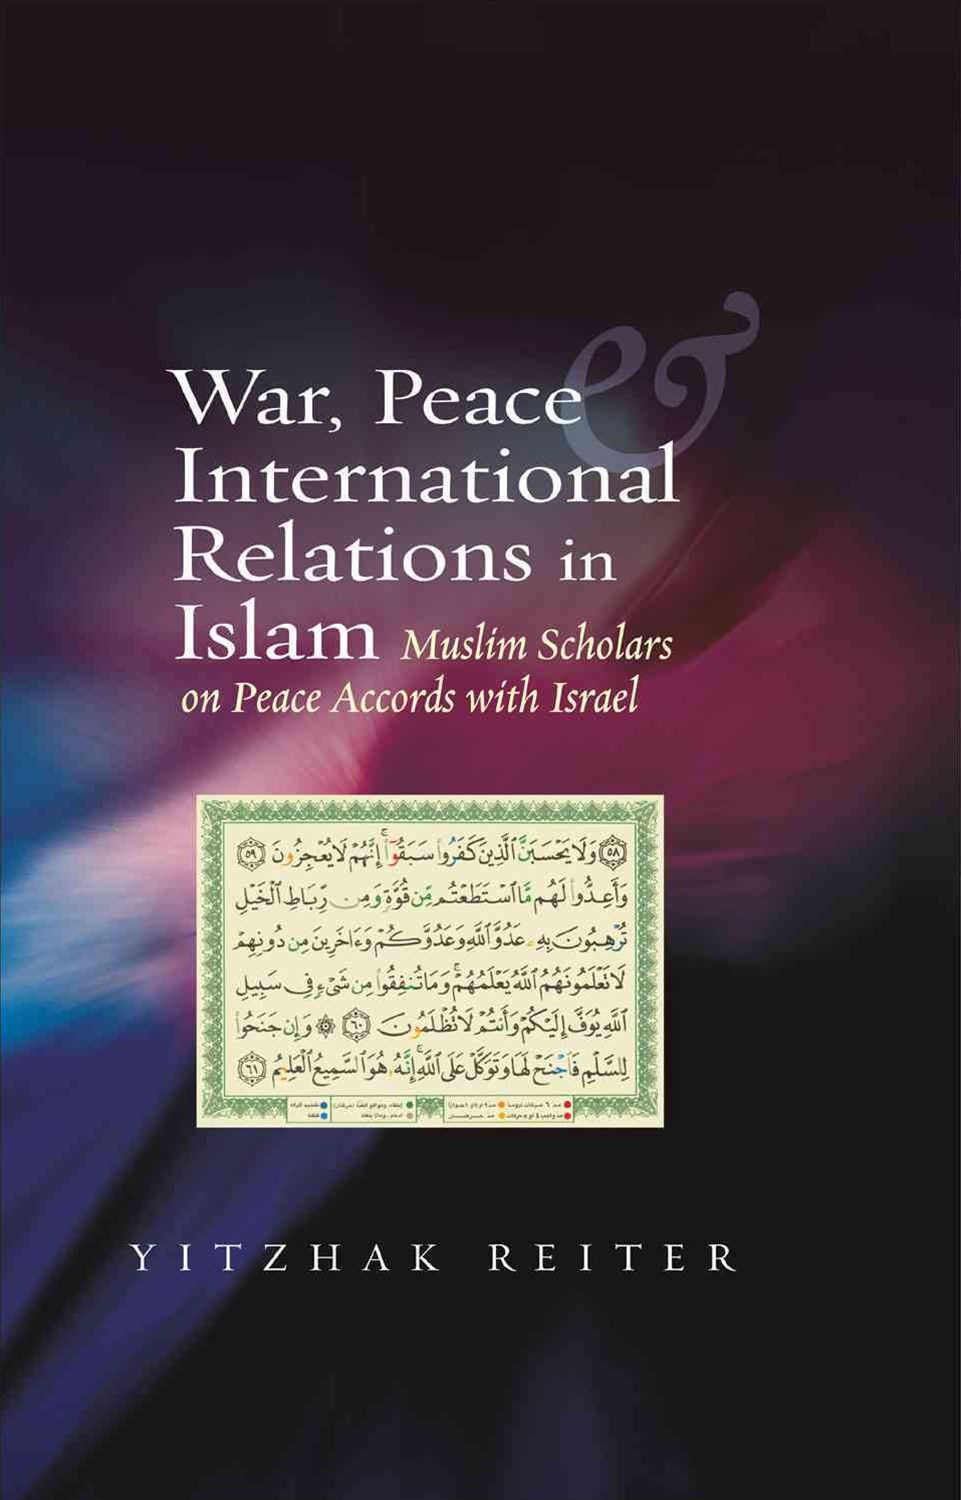 War, Peace and International Relations in Islam